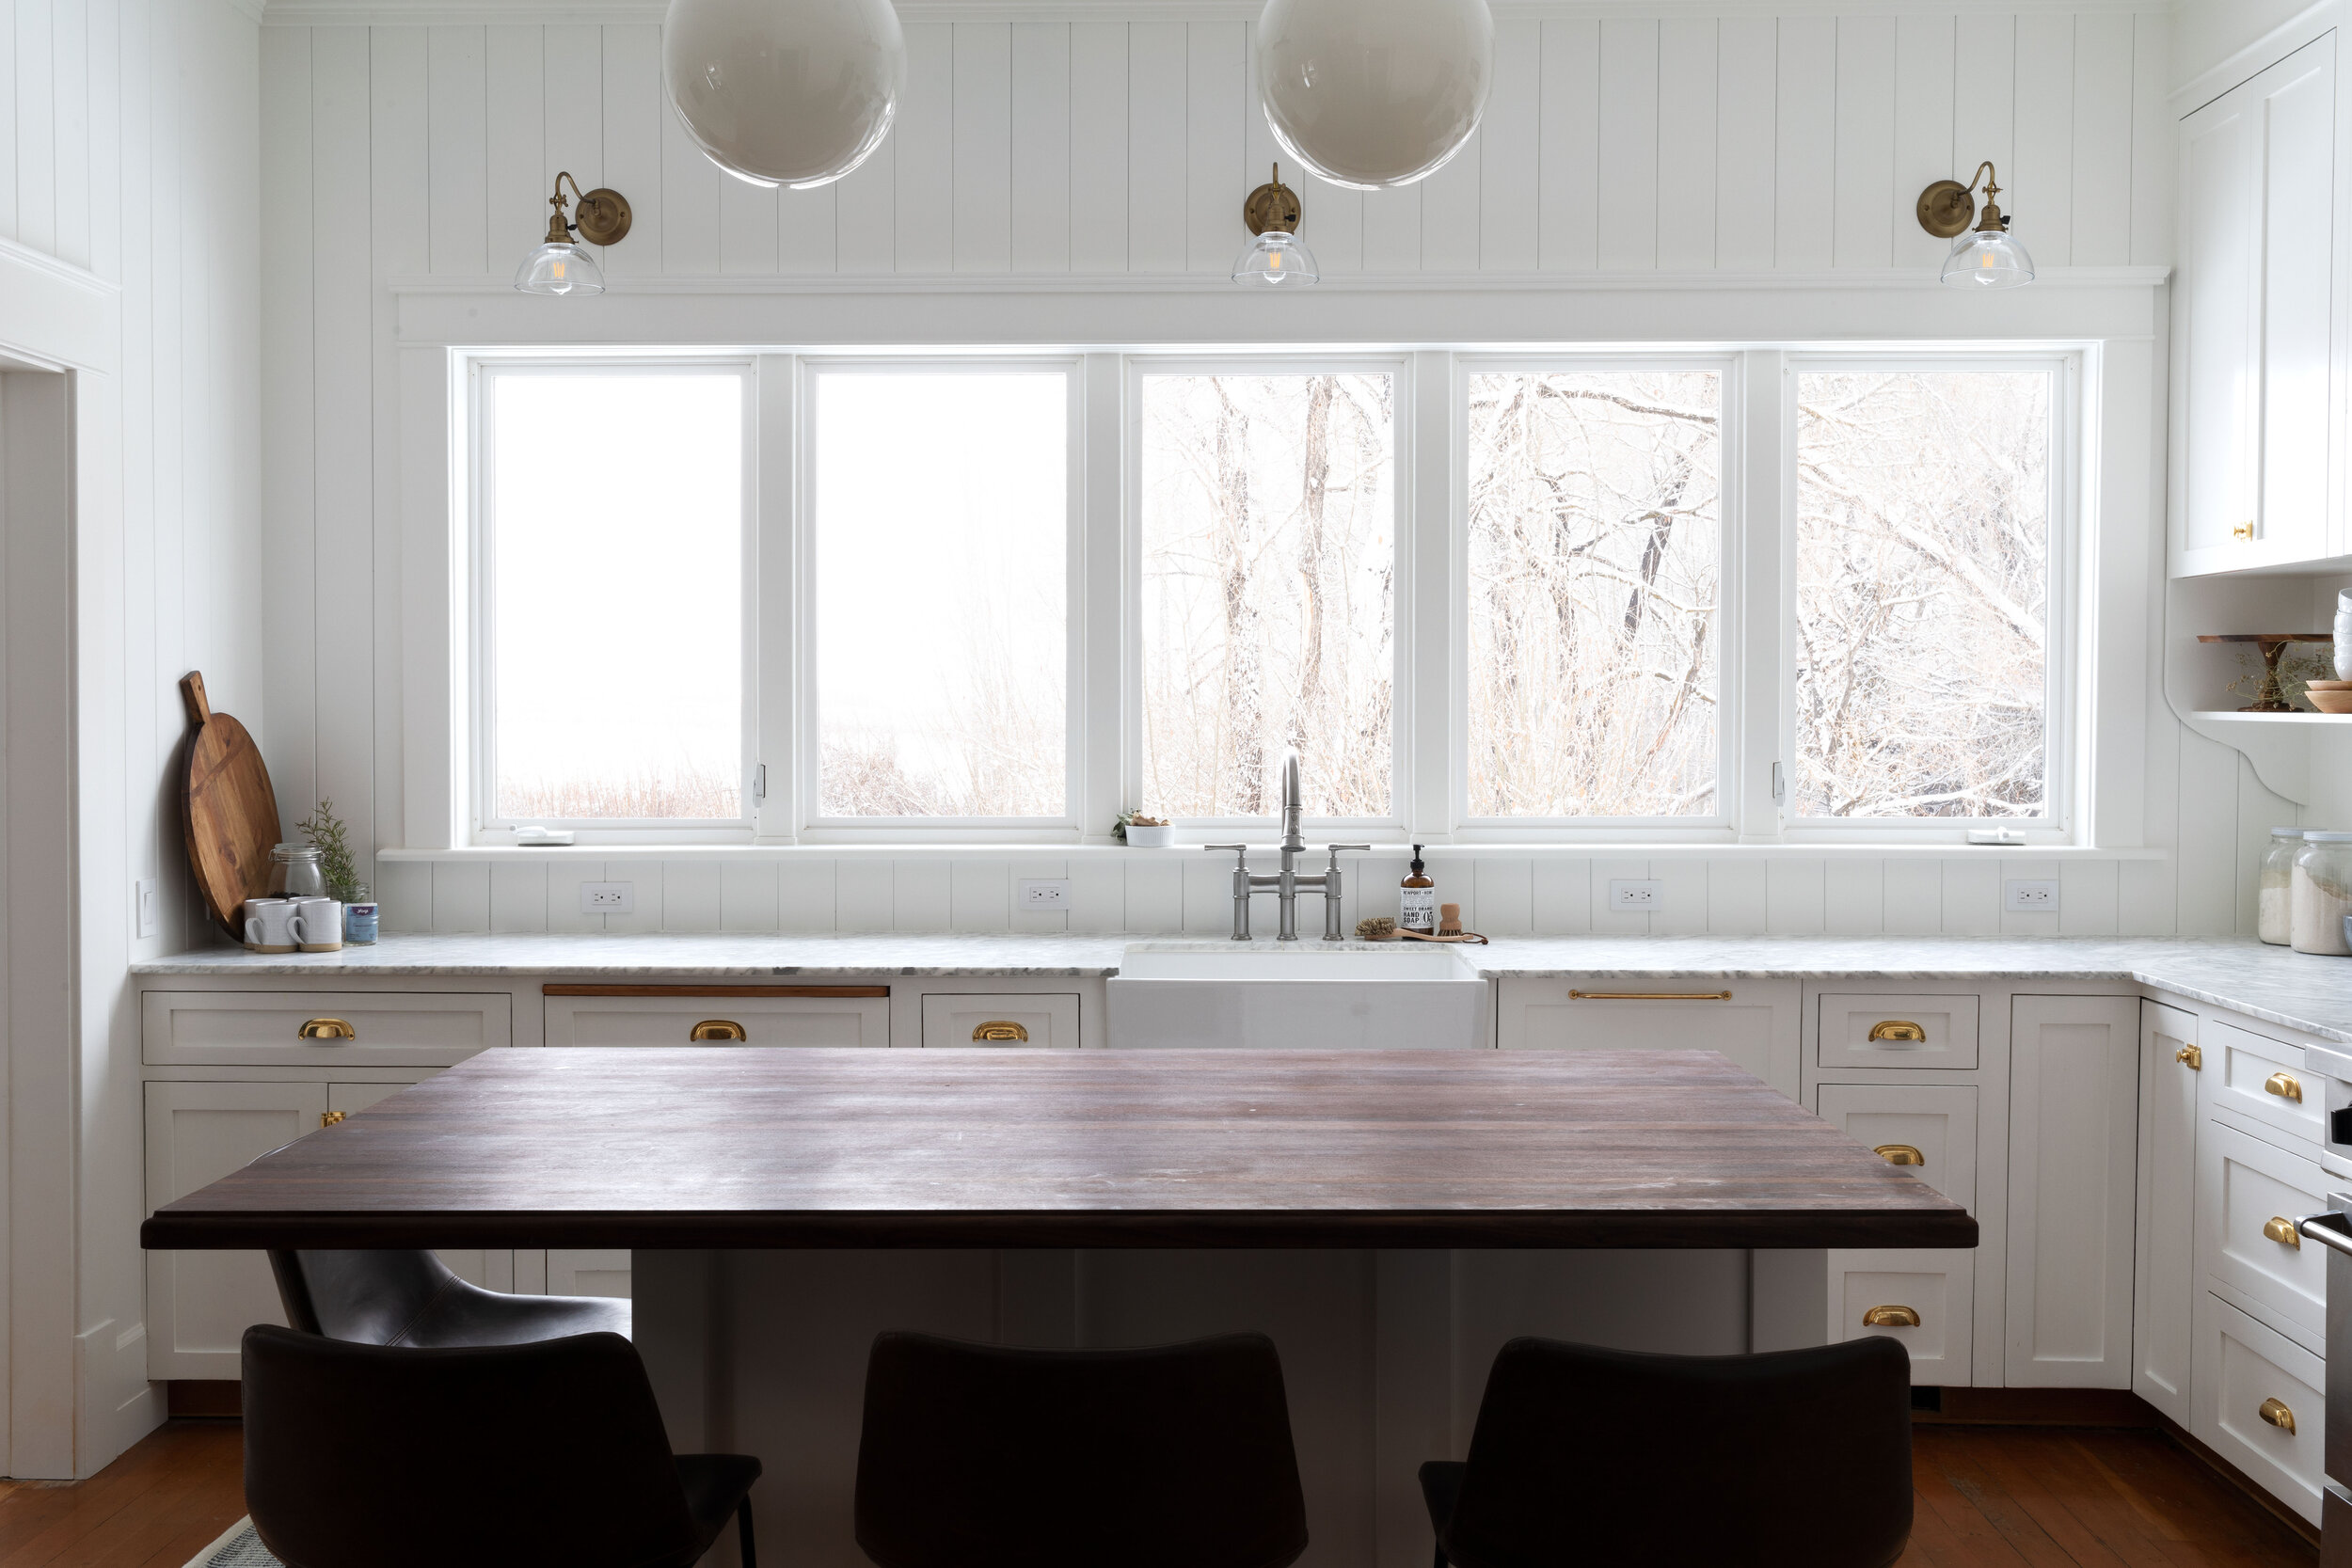 The Grit and Polish - Farmhouse Country Kitchen Reveal 3.0 30 web.jpg